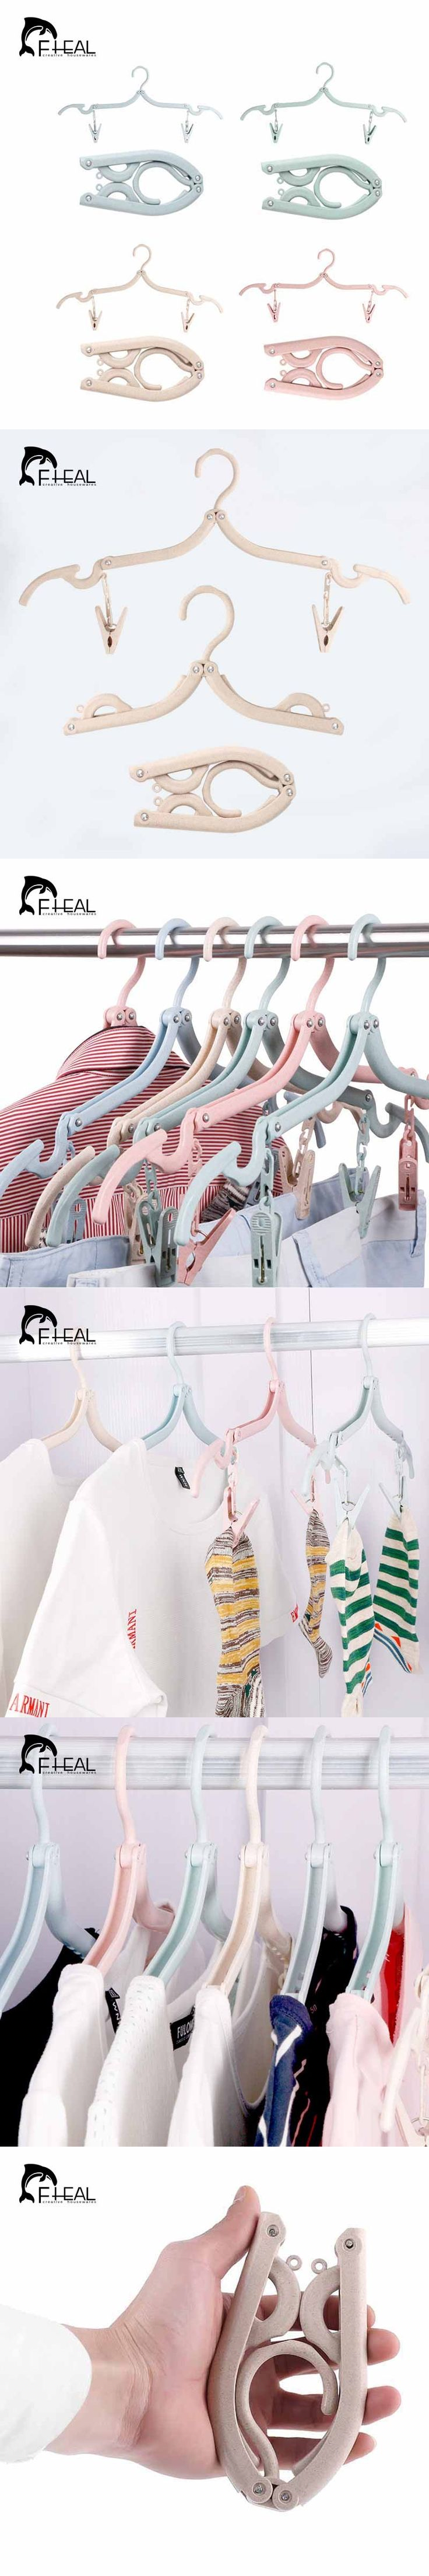 FHEAL Portable Folding Clothes Hanger And 2 clips Multifunctional Underwear Bra Socks Hanger Clips Clothing Storage Rack